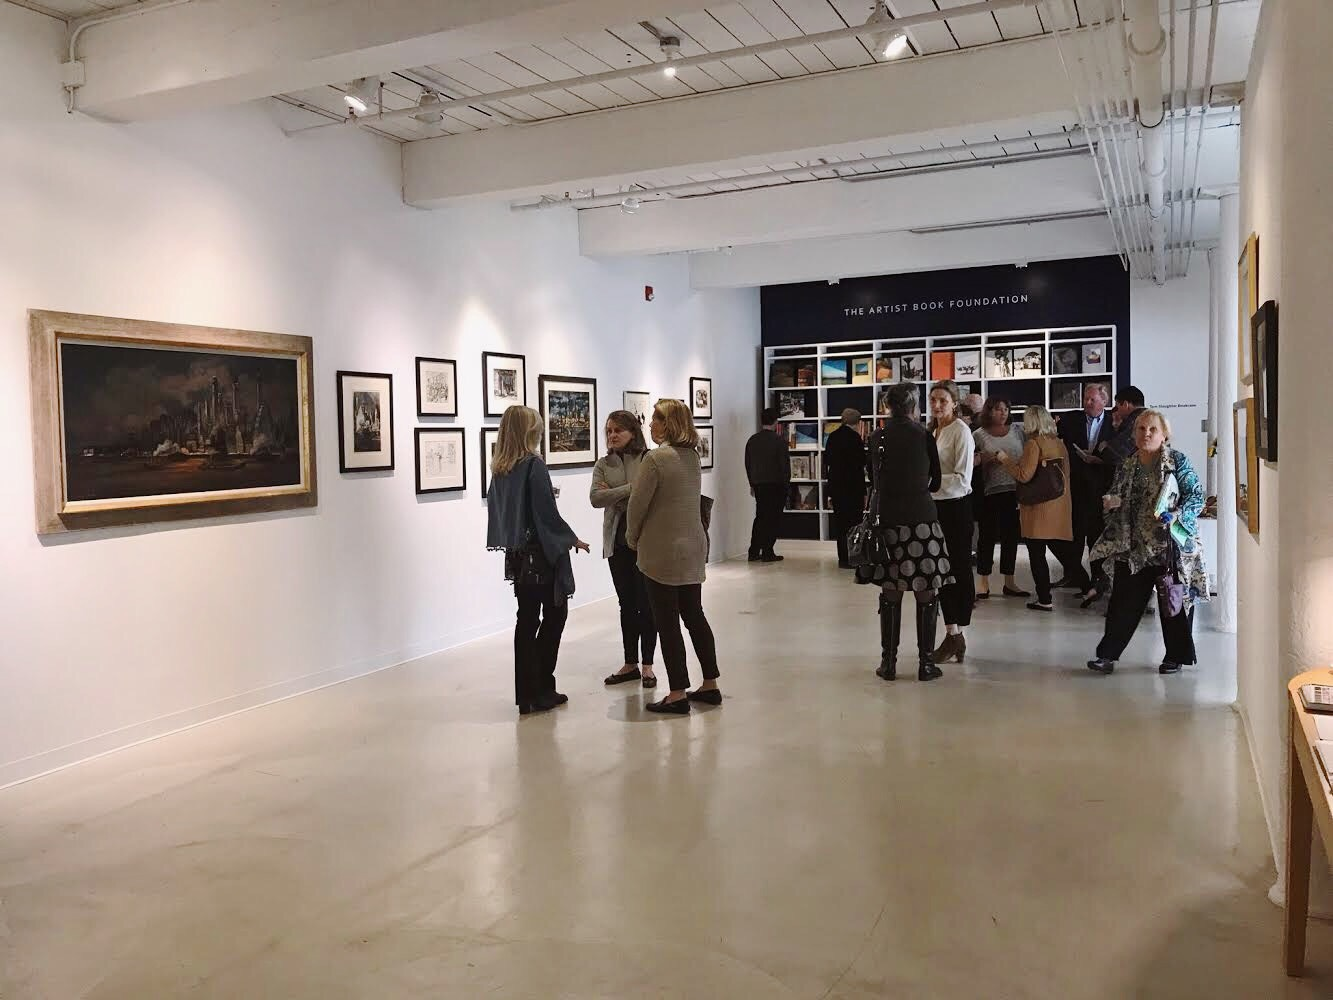 https://www.artistbkfoundation.org/new-gallery-events